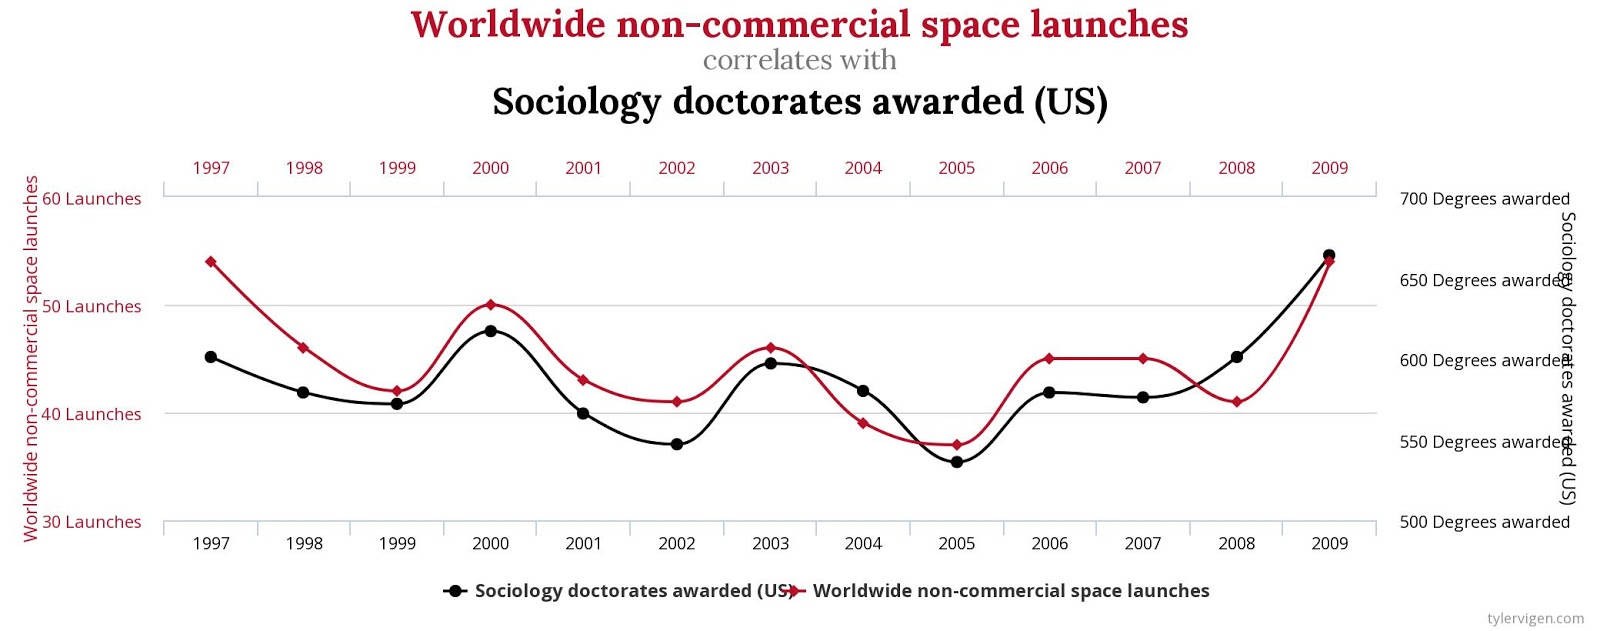 Tyler Vigens Spurious Correlations Blog >> Conversable Economist Pareidolia When Correlations Are Truly